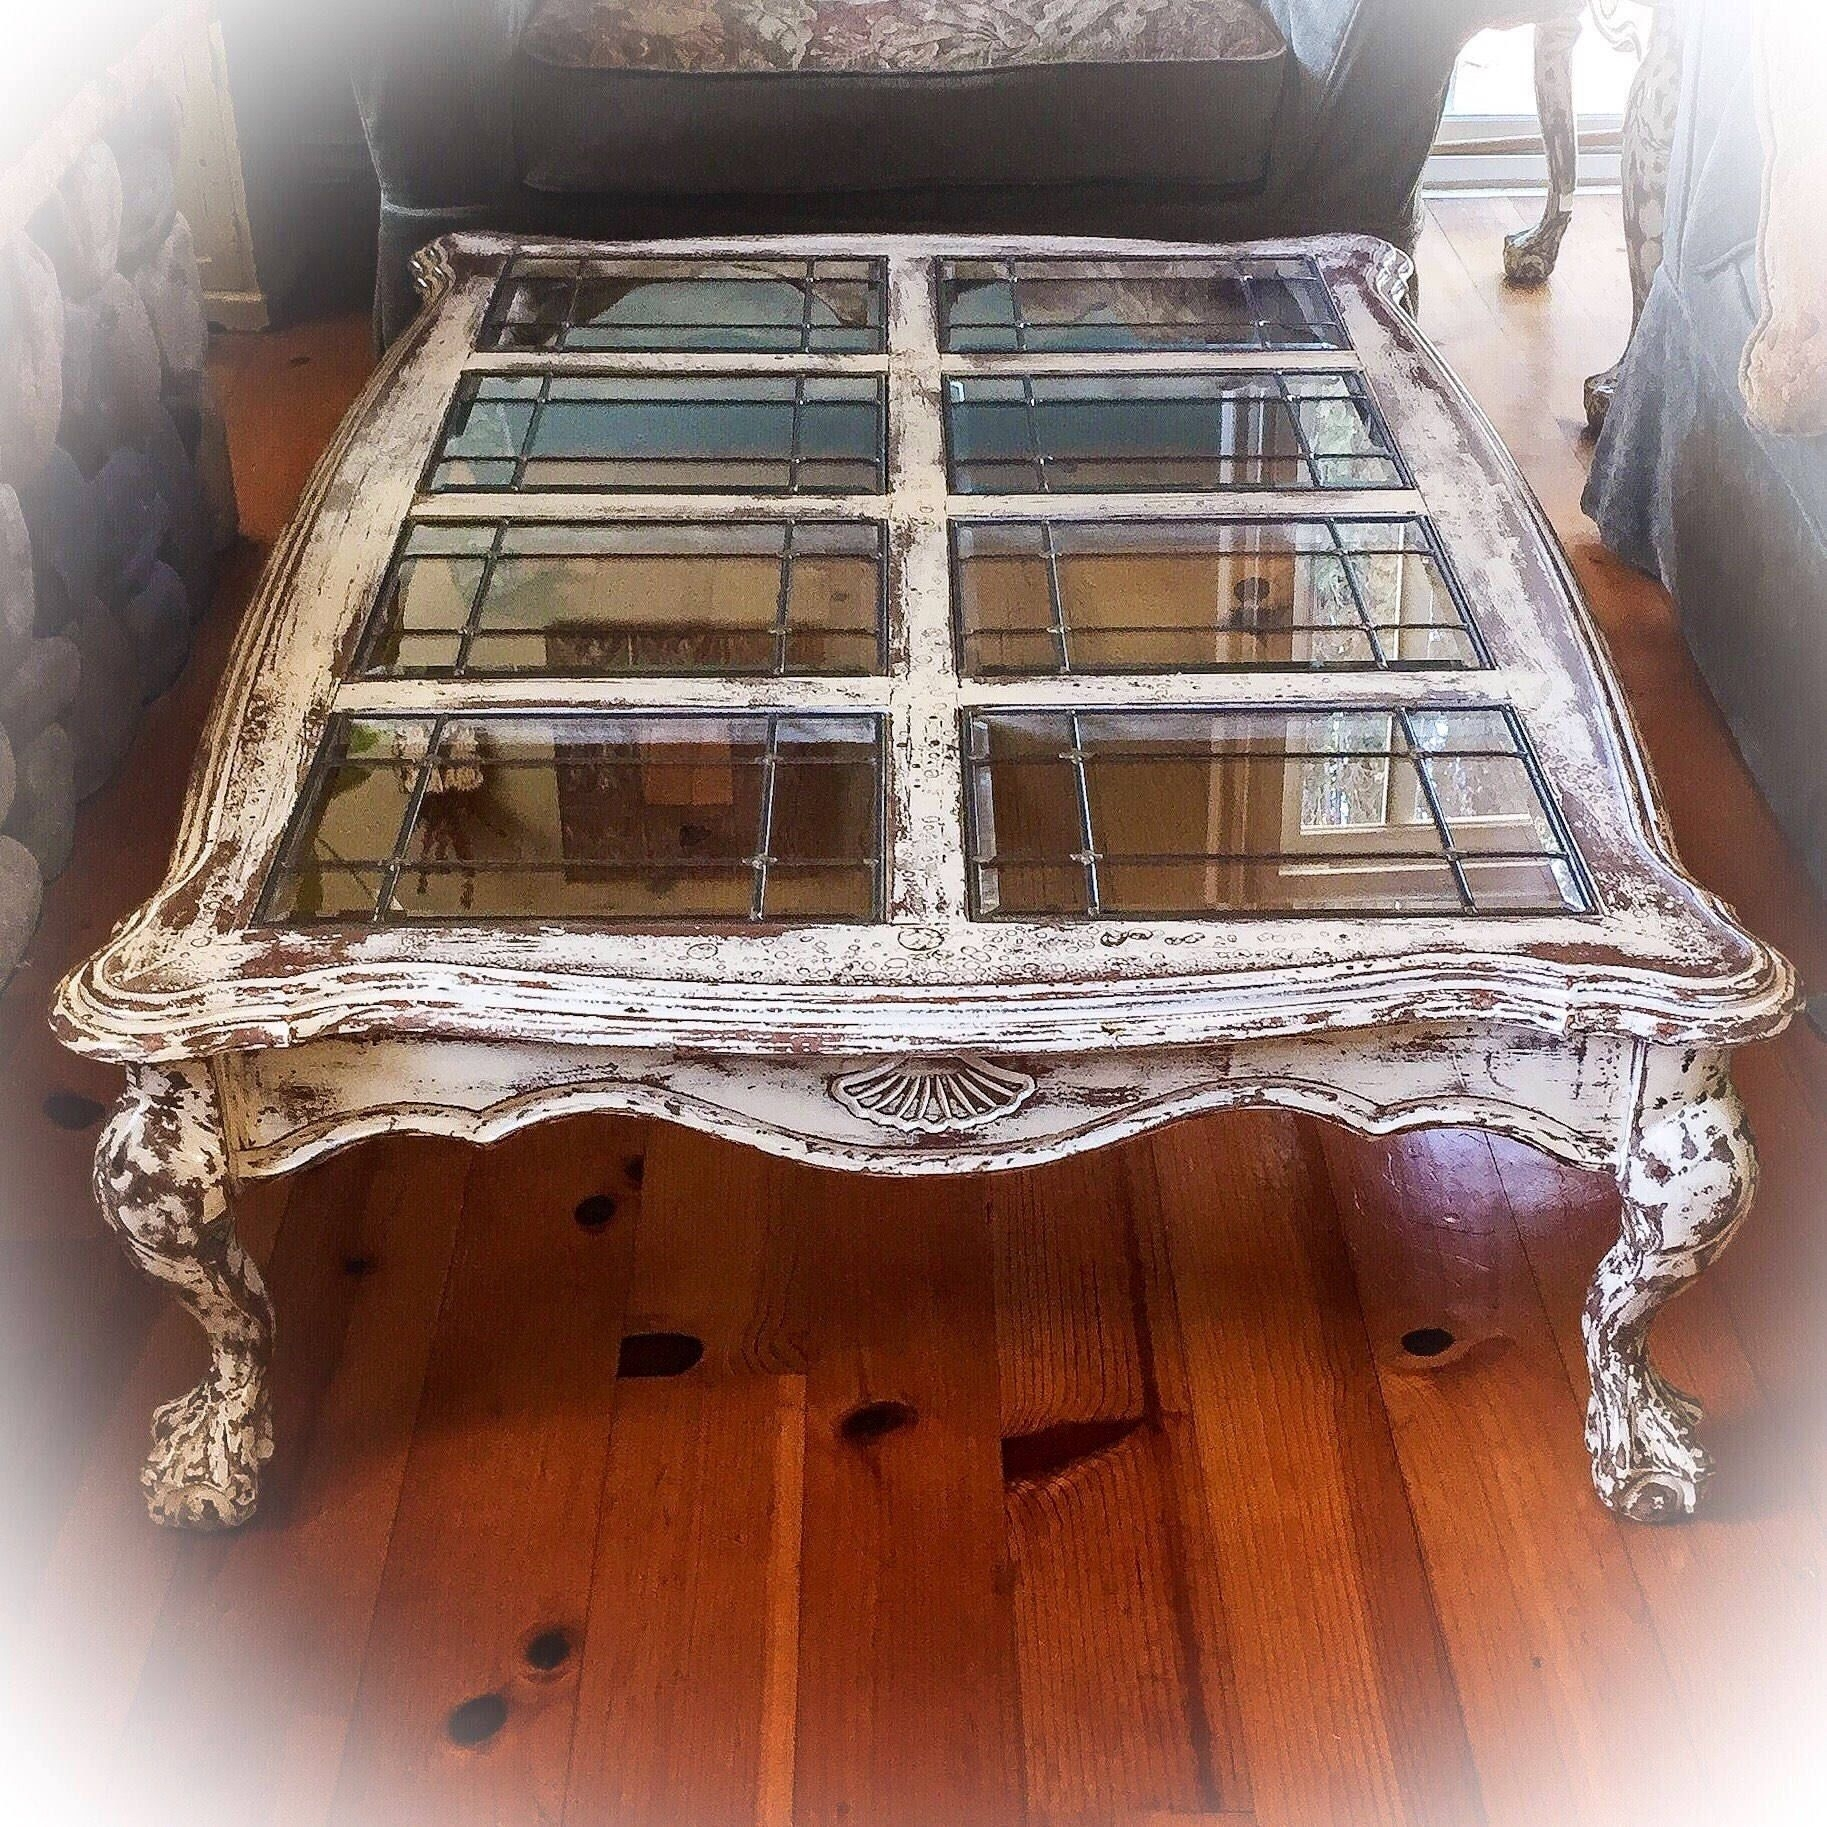 Sold – 5' Farmhouse Coffee Table, Antique White W/ Copper Undertones Regarding Large Scale Chinese Farmhouse Coffee Tables (View 17 of 30)